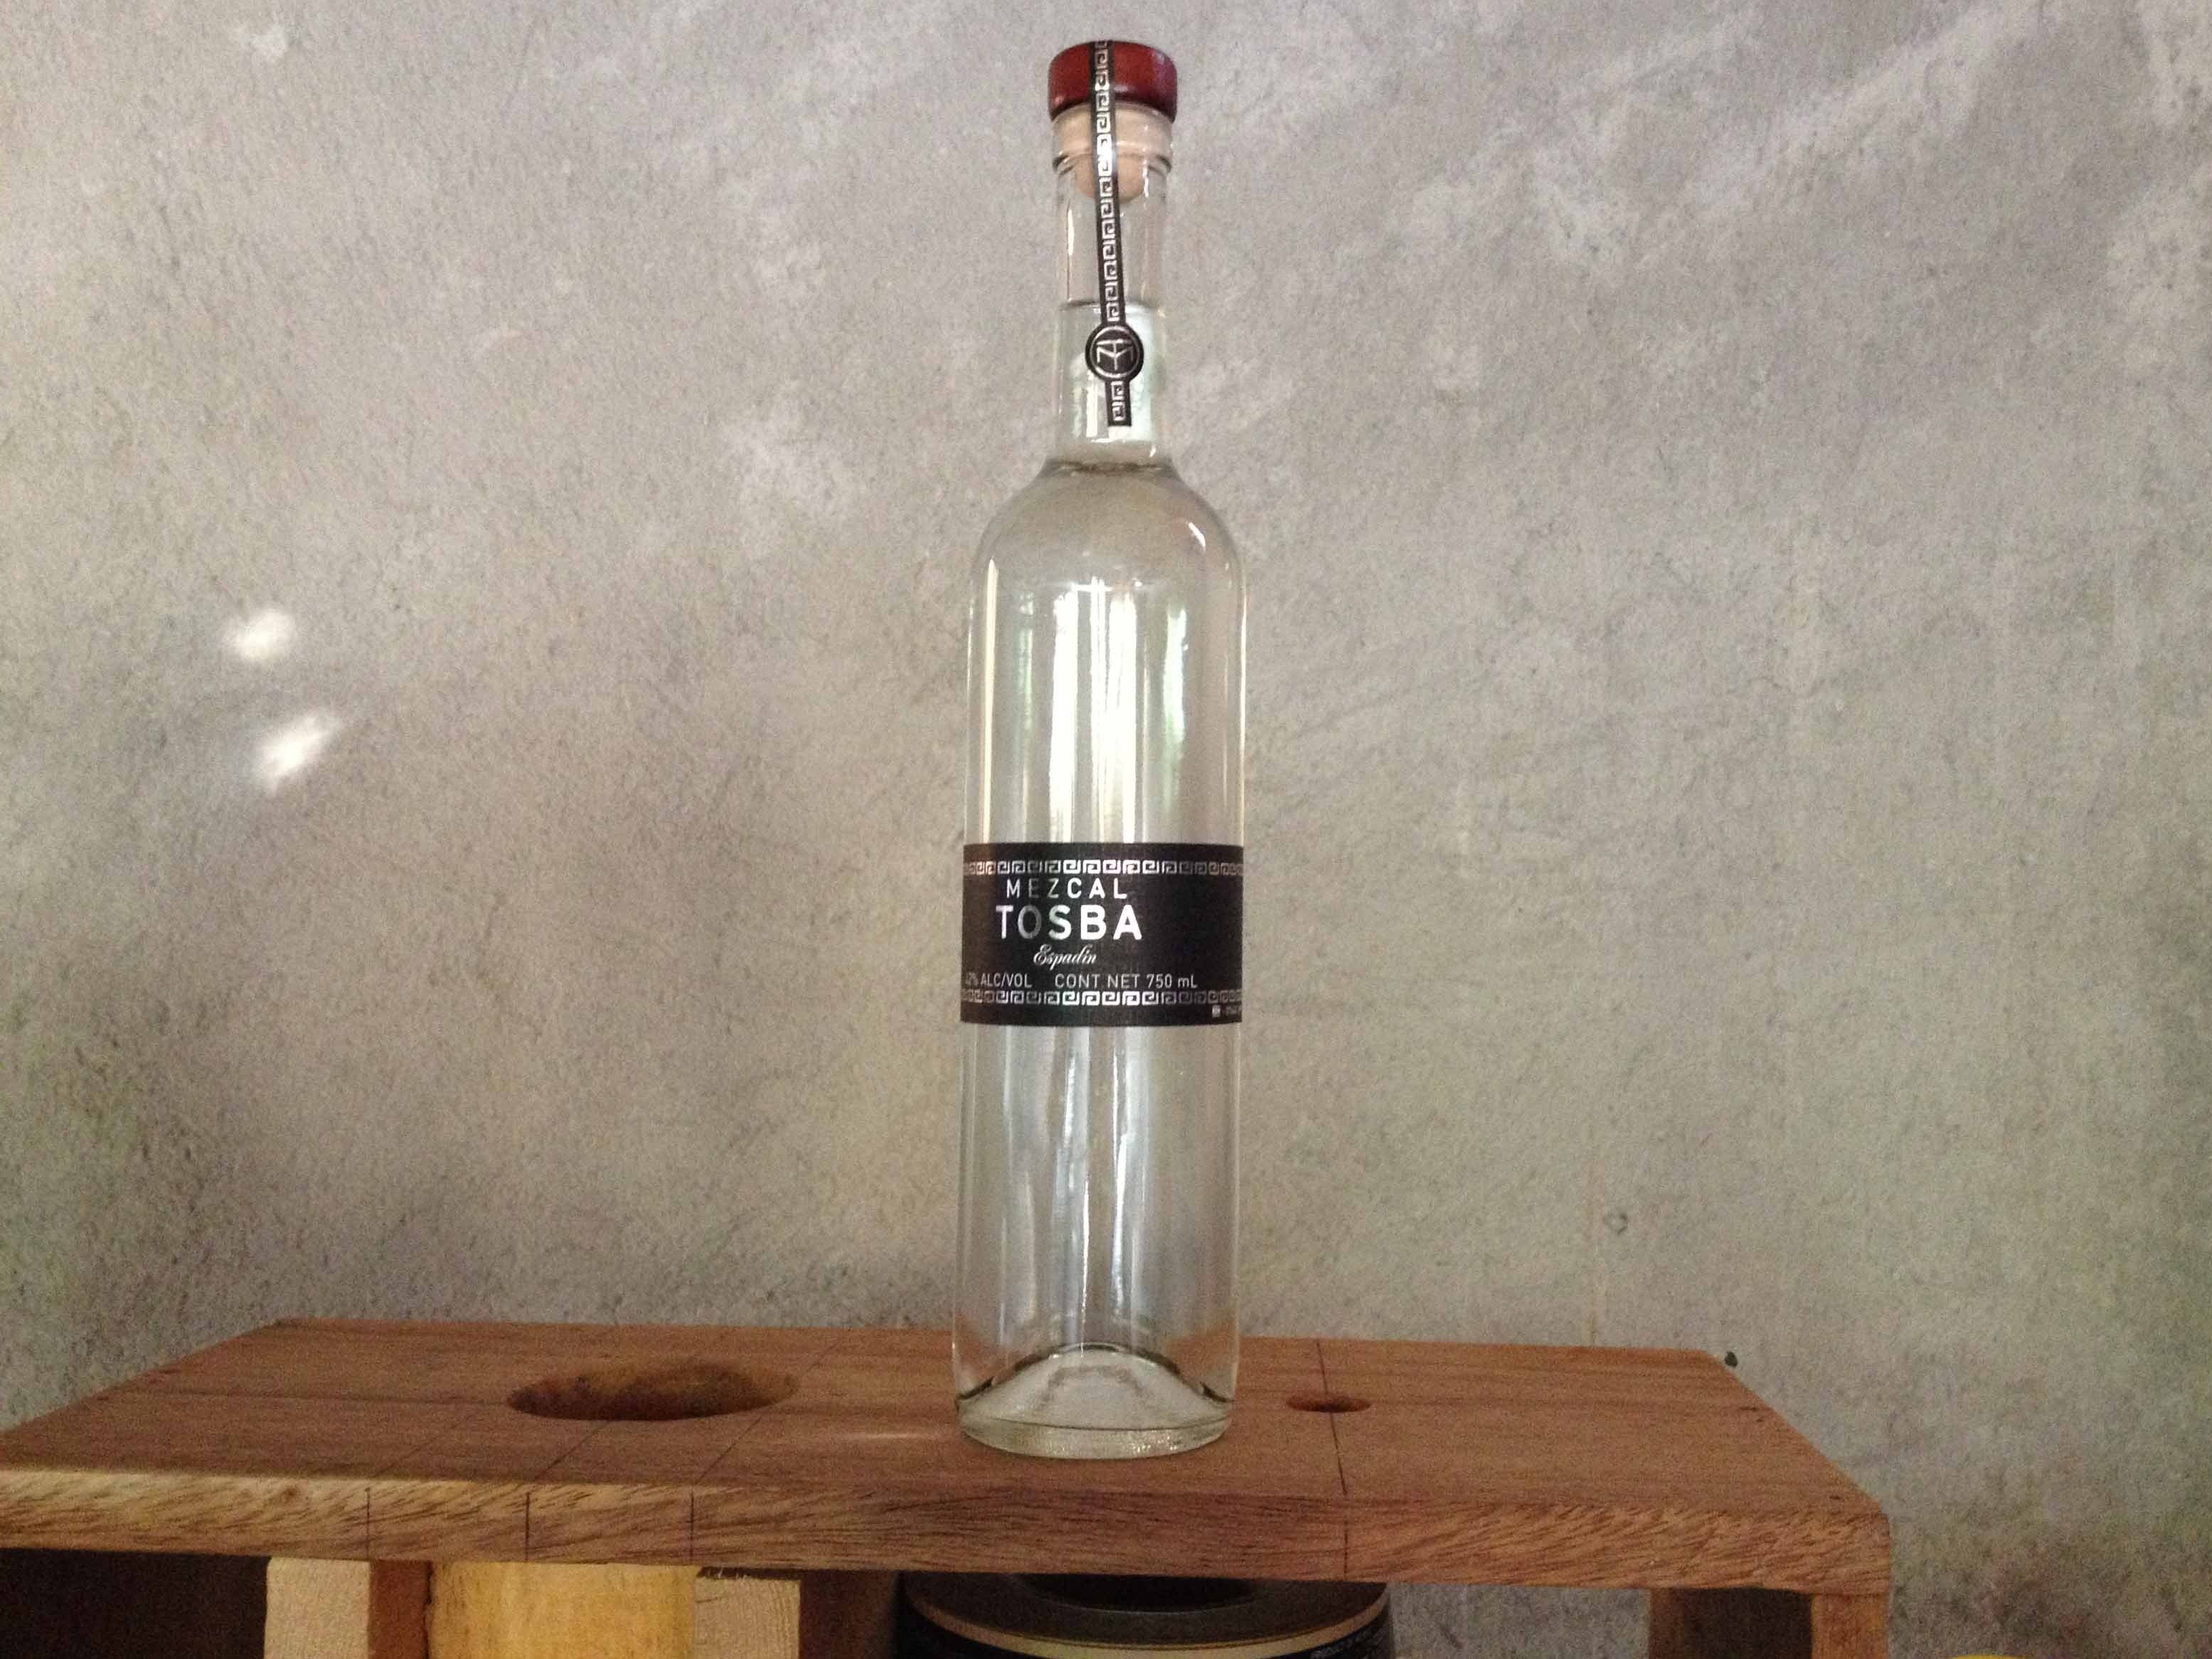 A bottle of Mezcal Tosba.